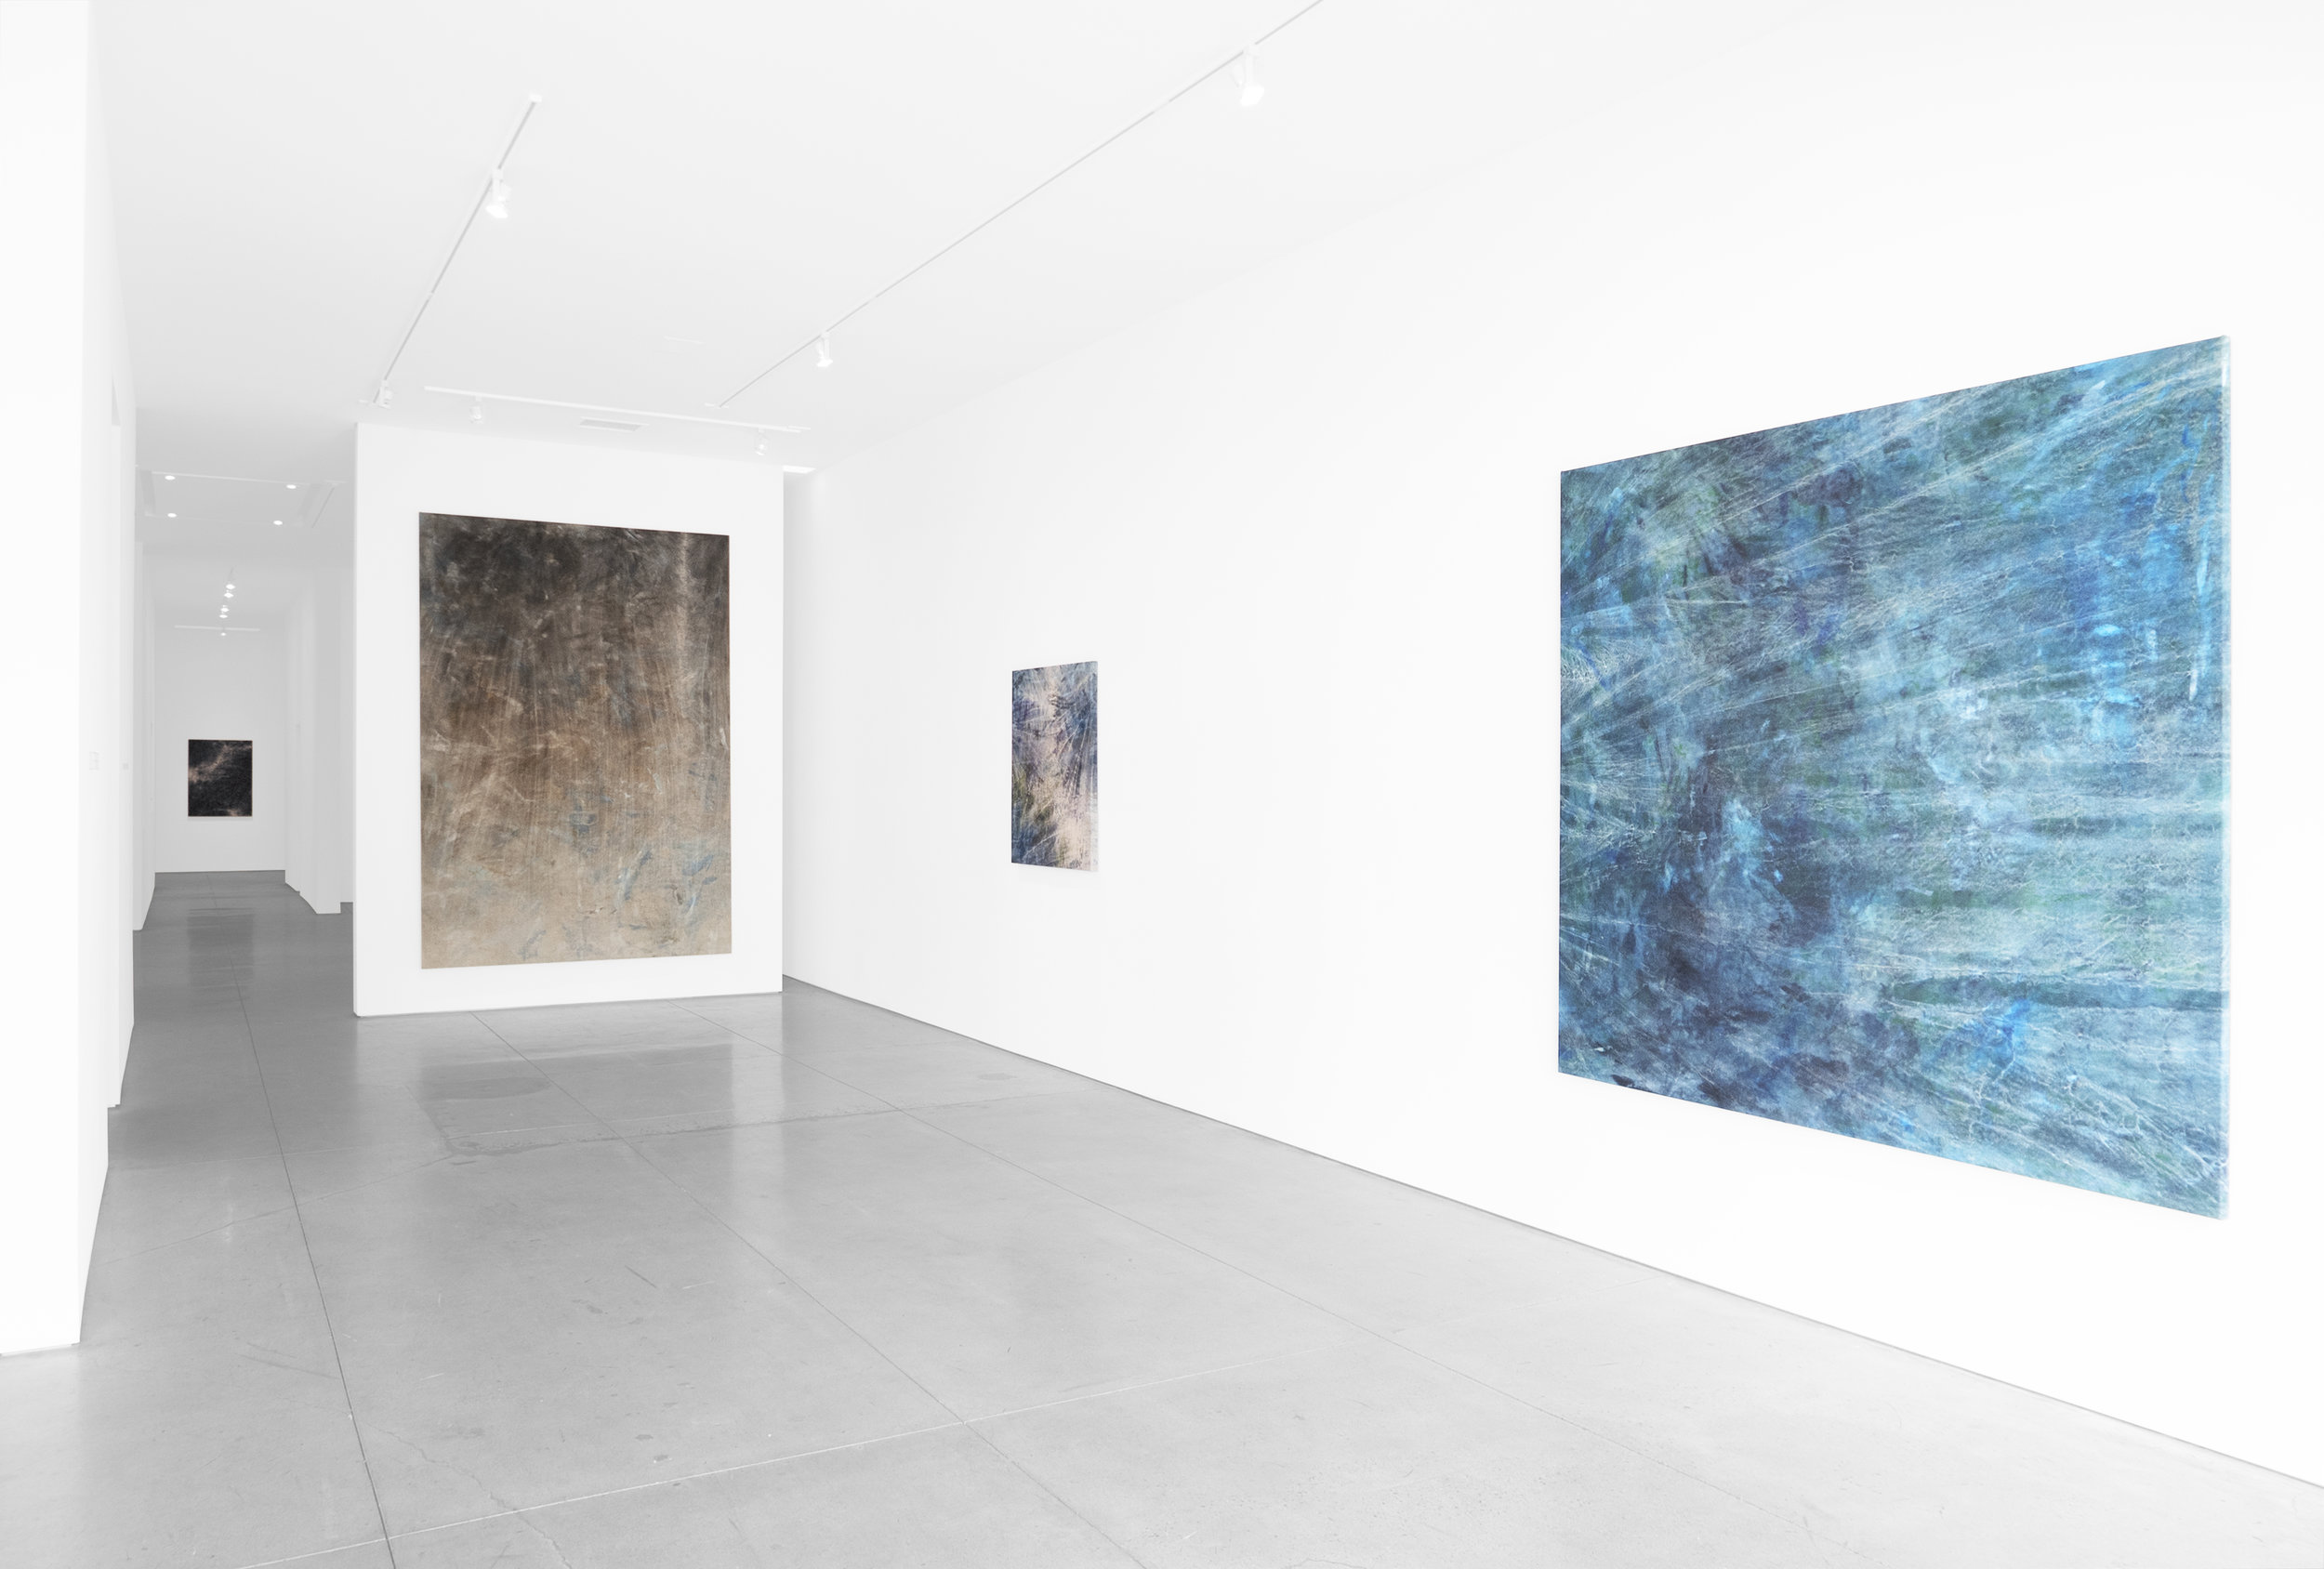 Cole Sternberg Solo Exhibition 2019_Peter Blake Gallery_Installation View_3.jpg